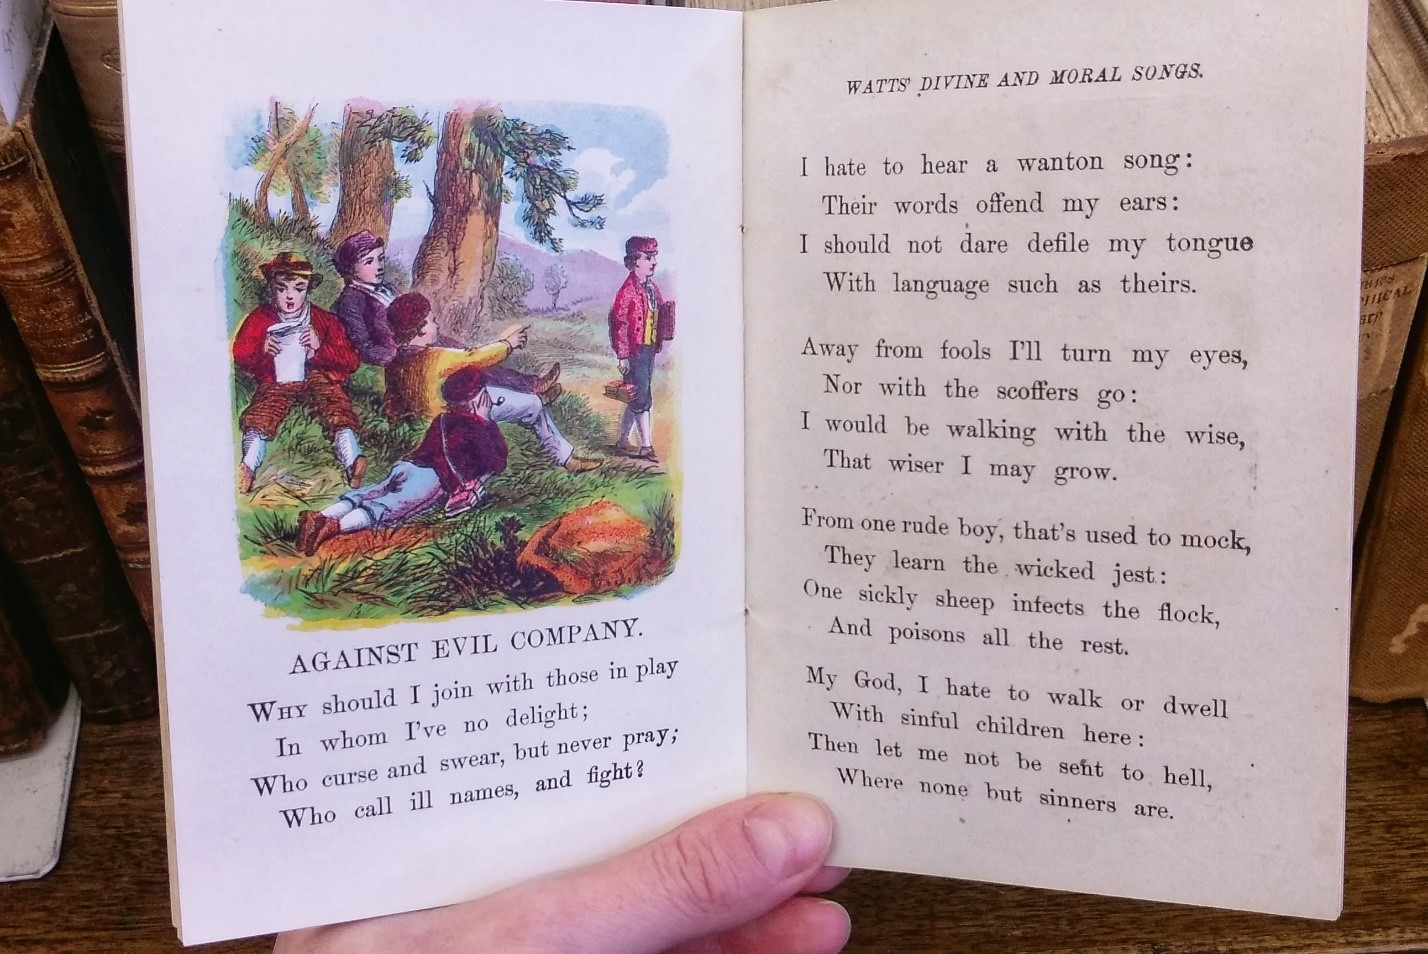 "Watt's Songs Against Evil (ca. 1850), a chapbook containing catchy ditties aimed at reminding children of the consequences awaiting those who are ""wicked"". PR3763 W2 W38 1850 - Sheila R. Bourke Collection."